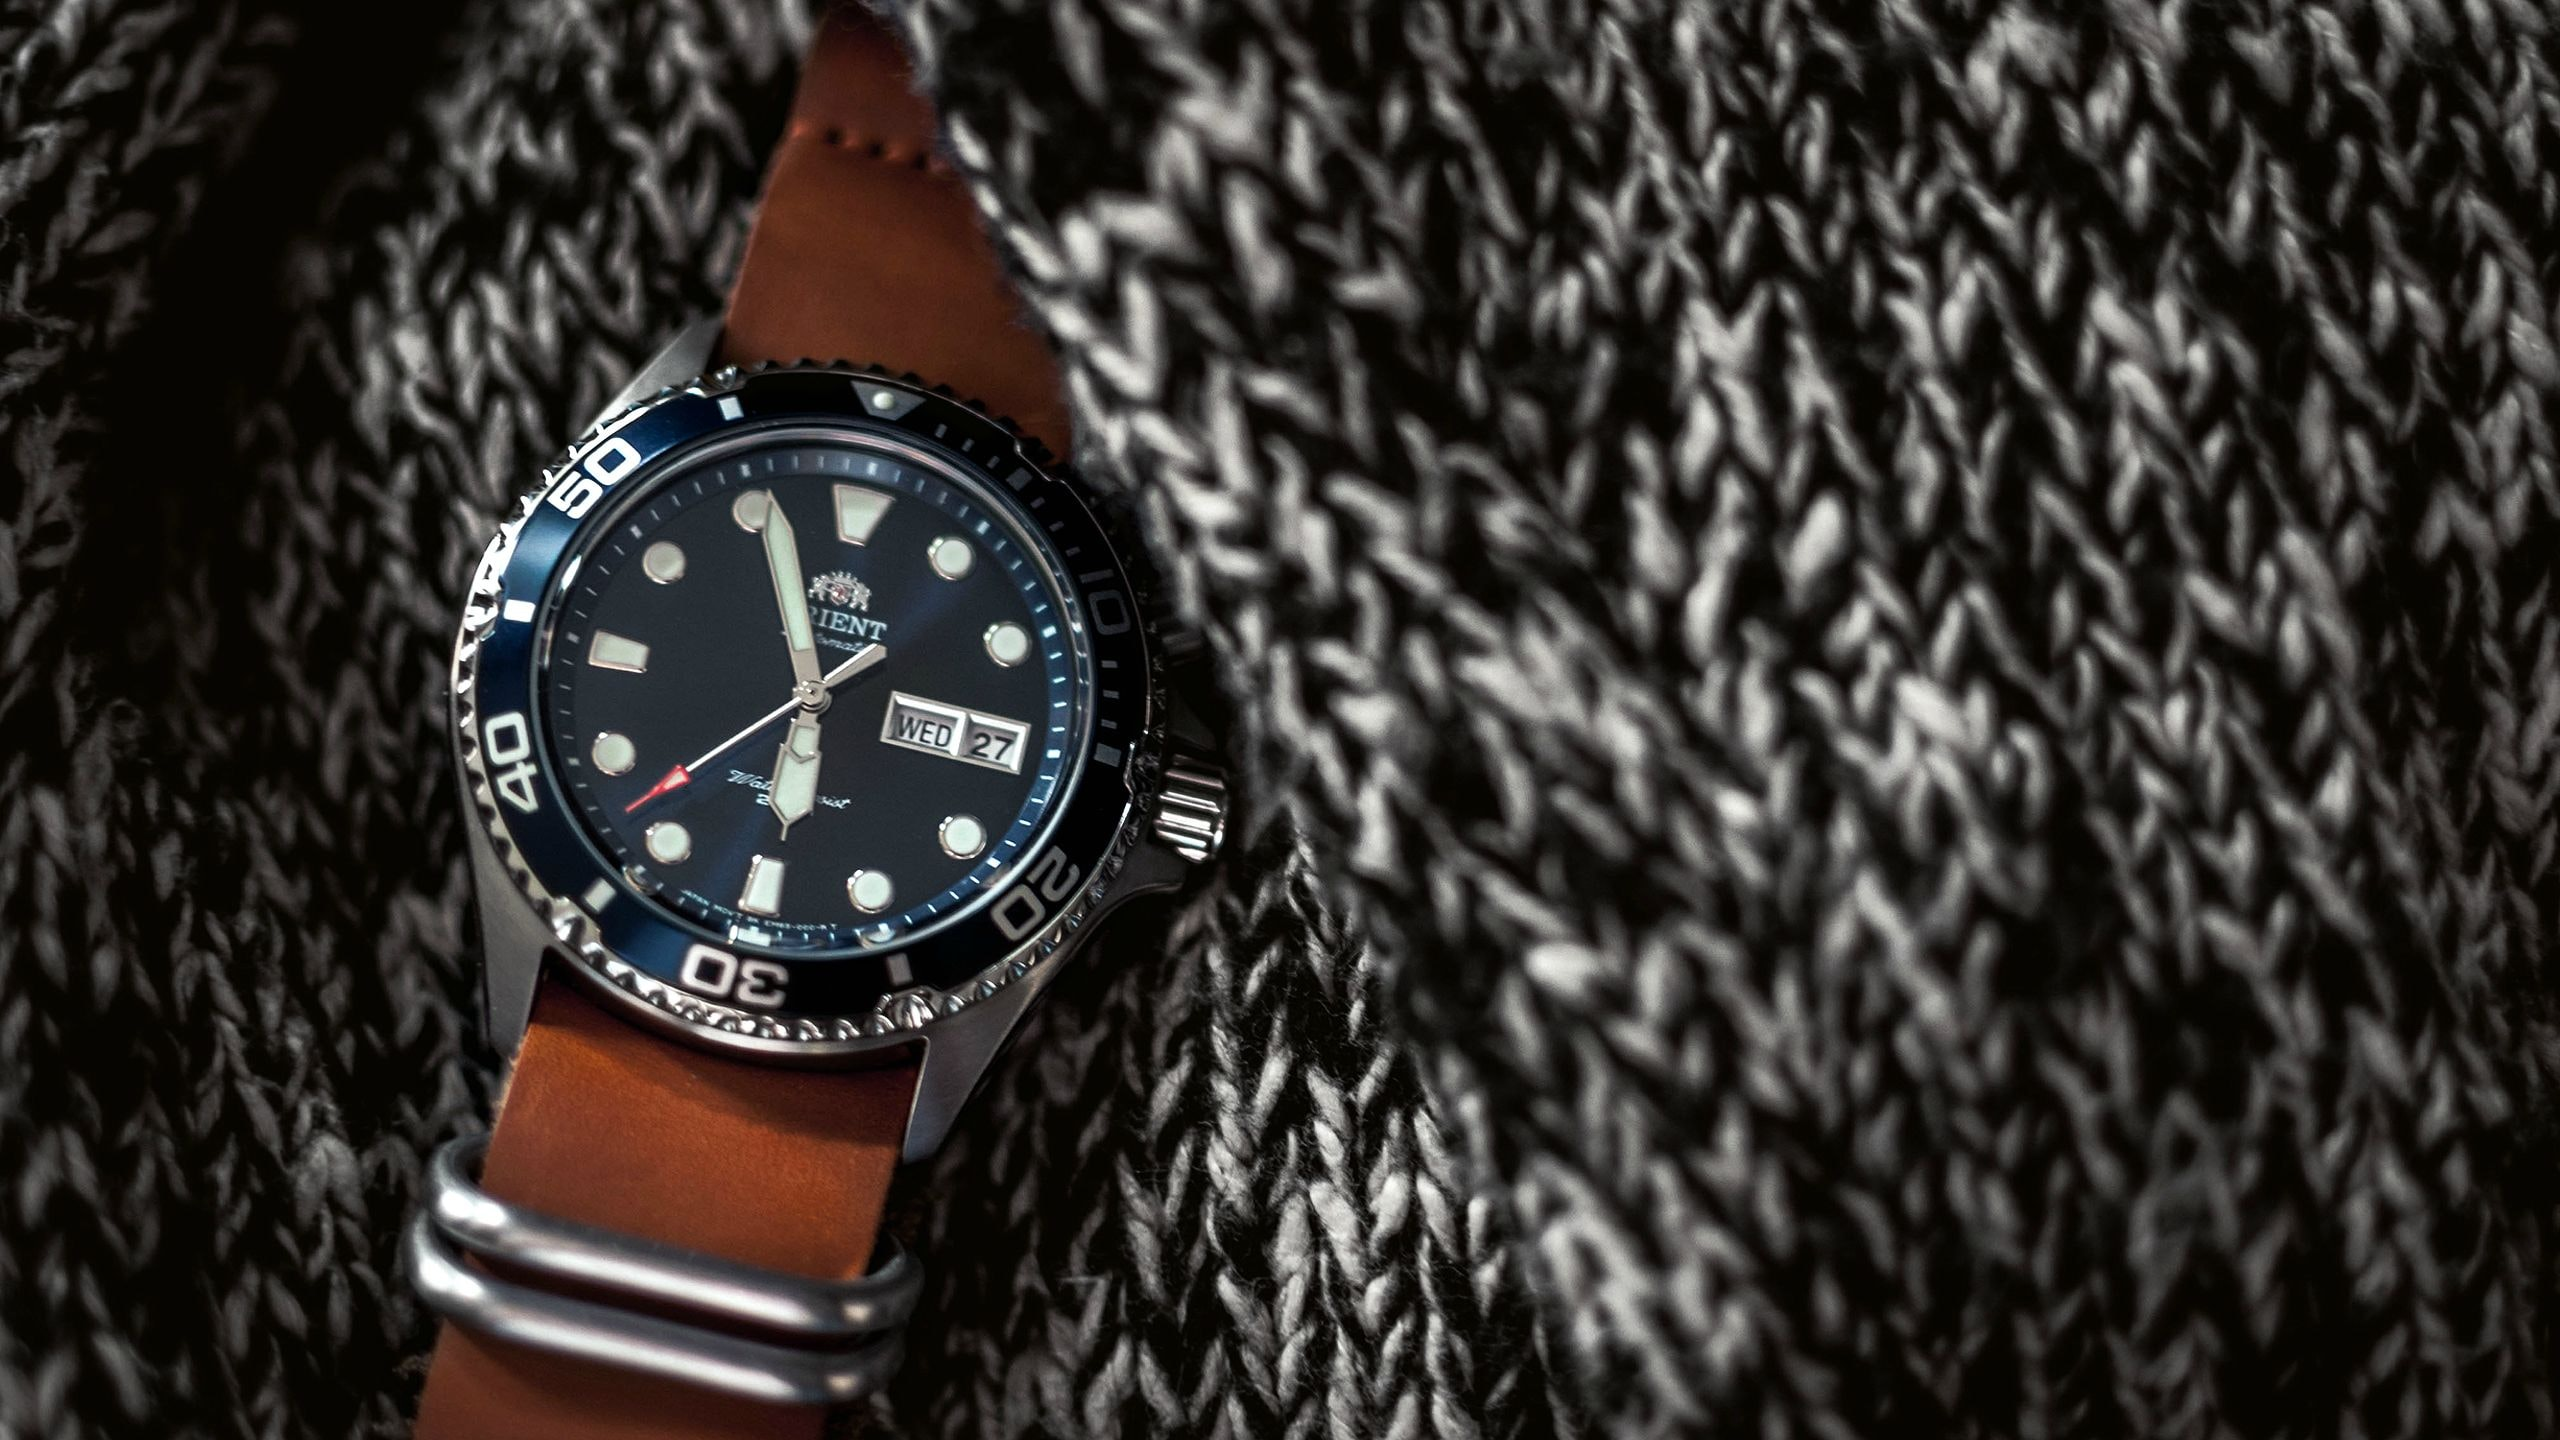 A luxury, expensive watch showing 5:55, Wednesday 27, with a leather strap and a dial on a knit fabric